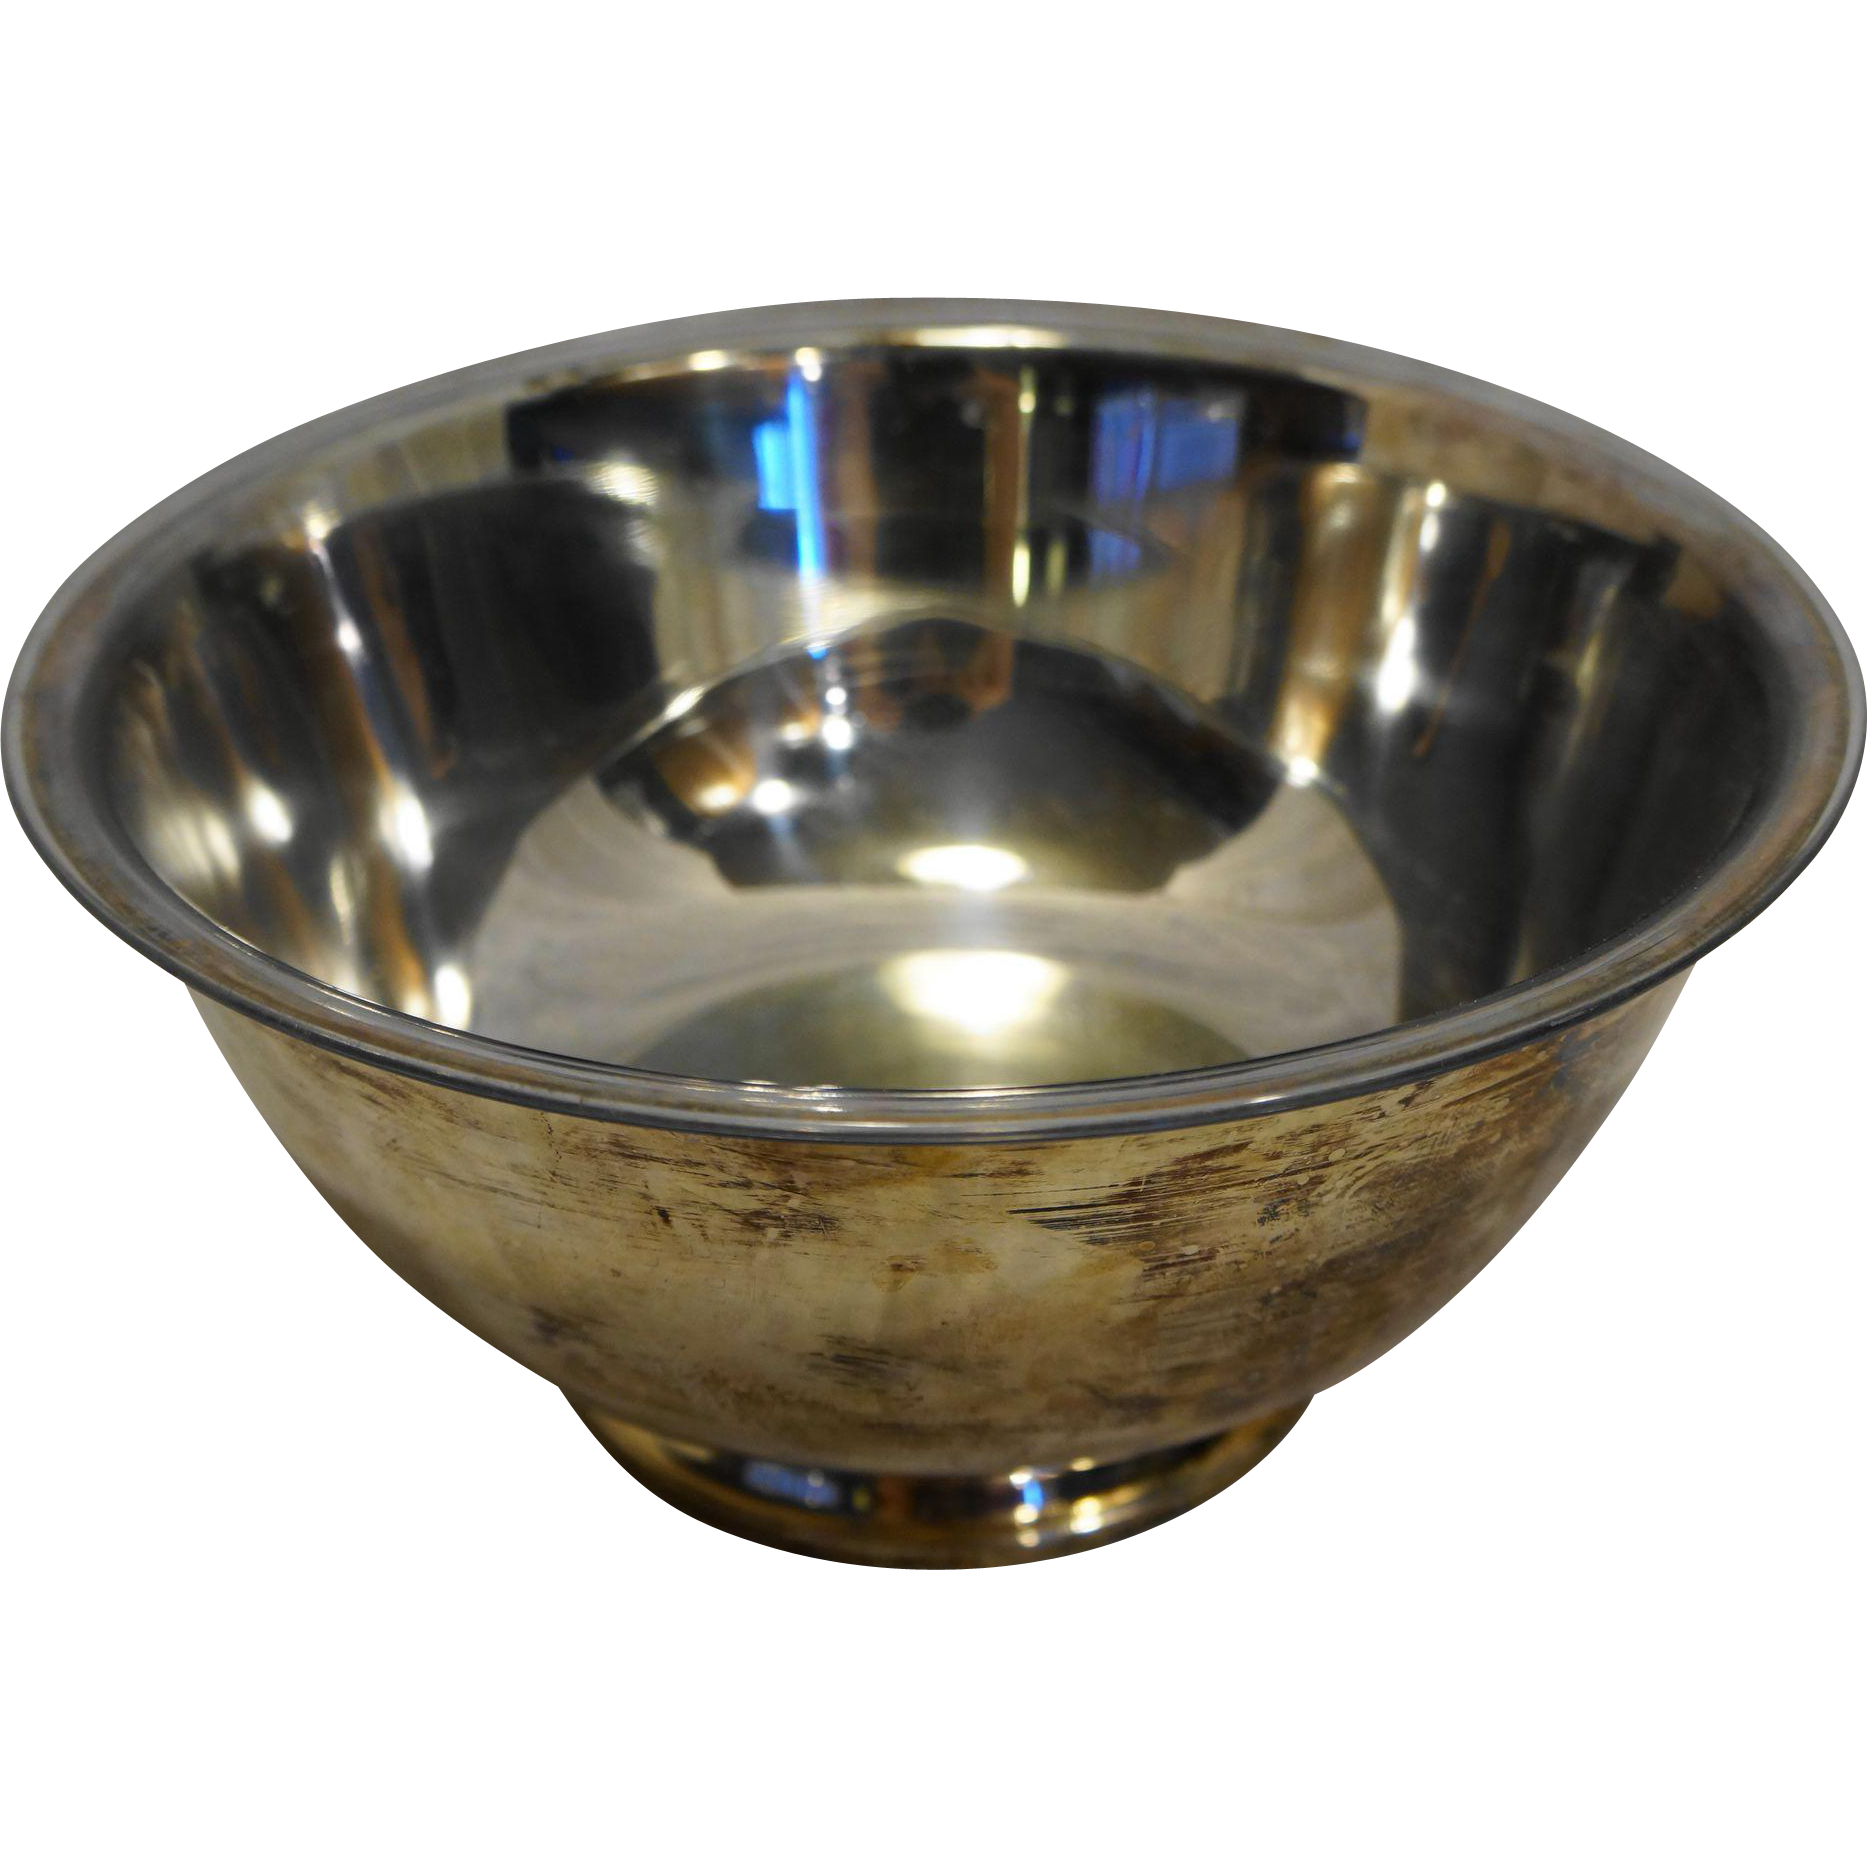 Oneida Silverplate Revere Bowl 10 IN With Liner